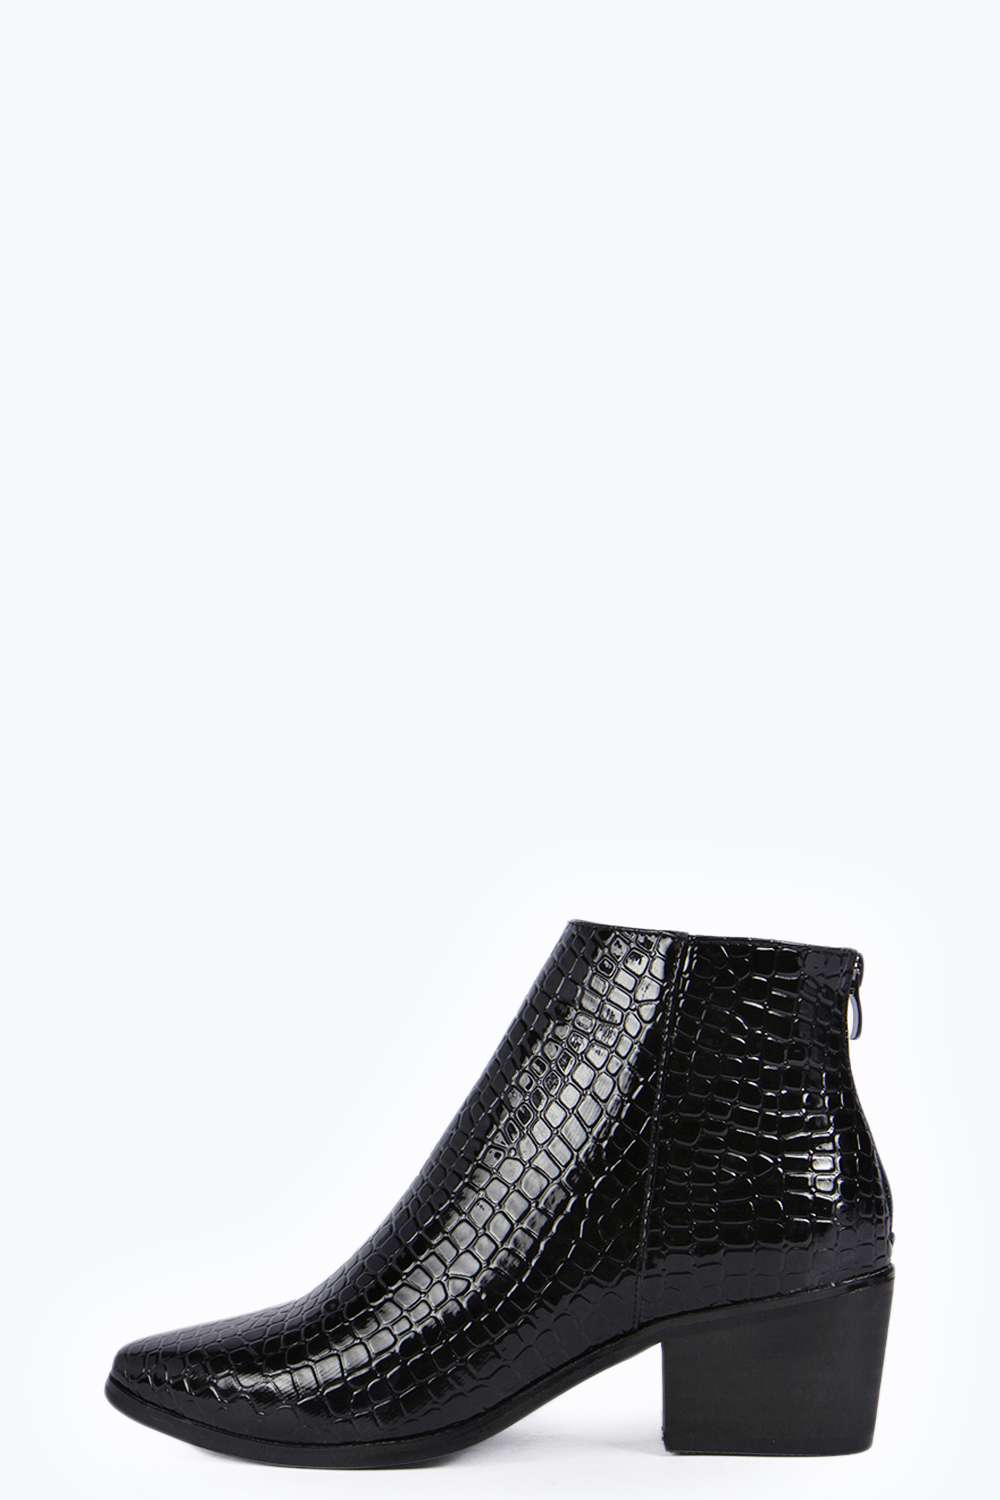 Kayla pointed croc ankle pistol boot